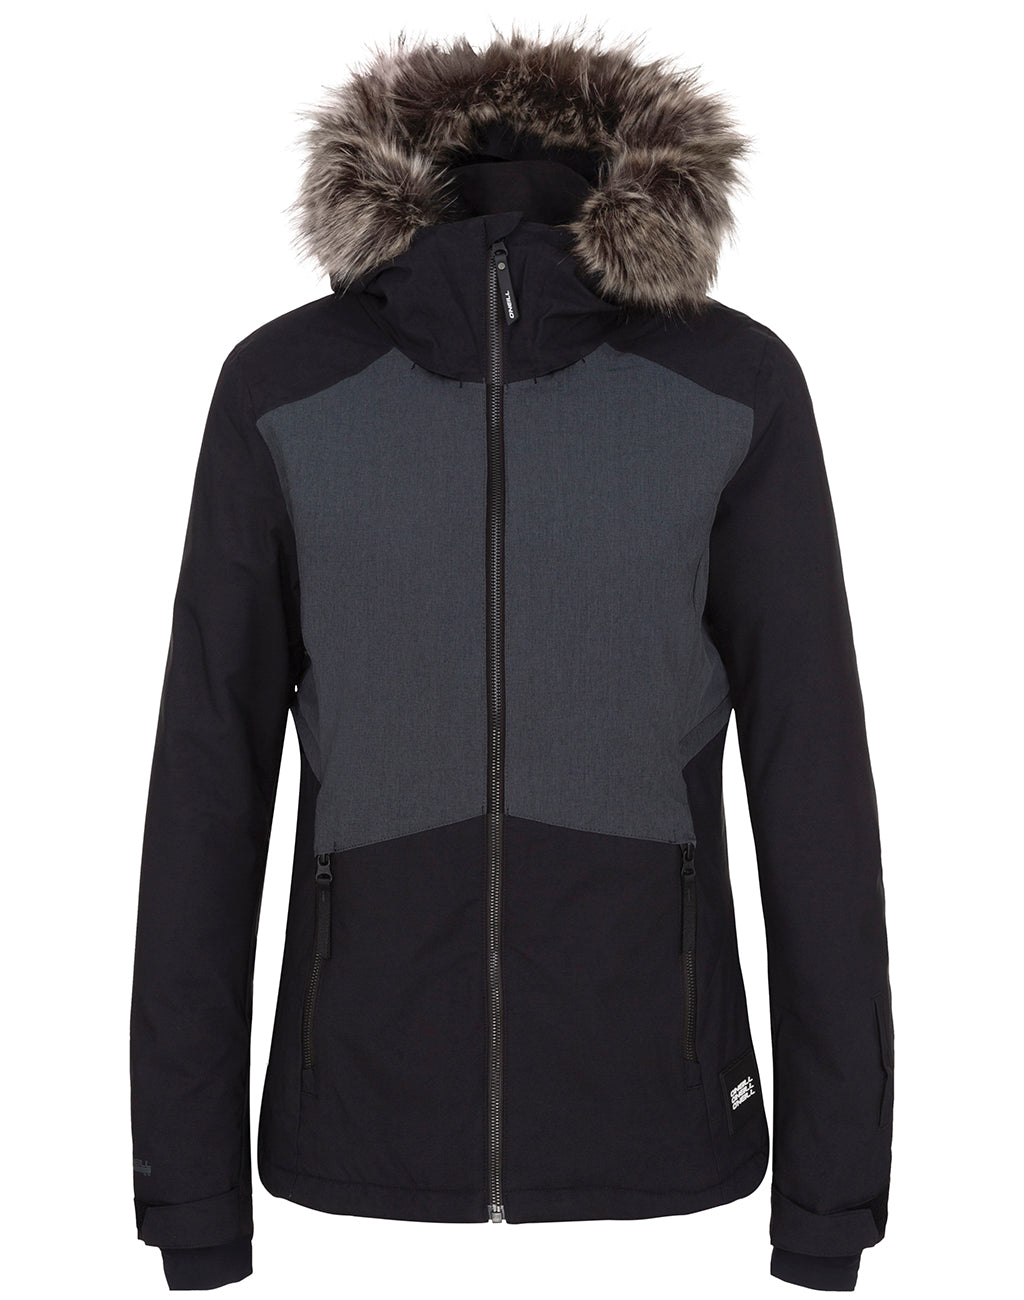 Women's O'Neill Halite Jacket